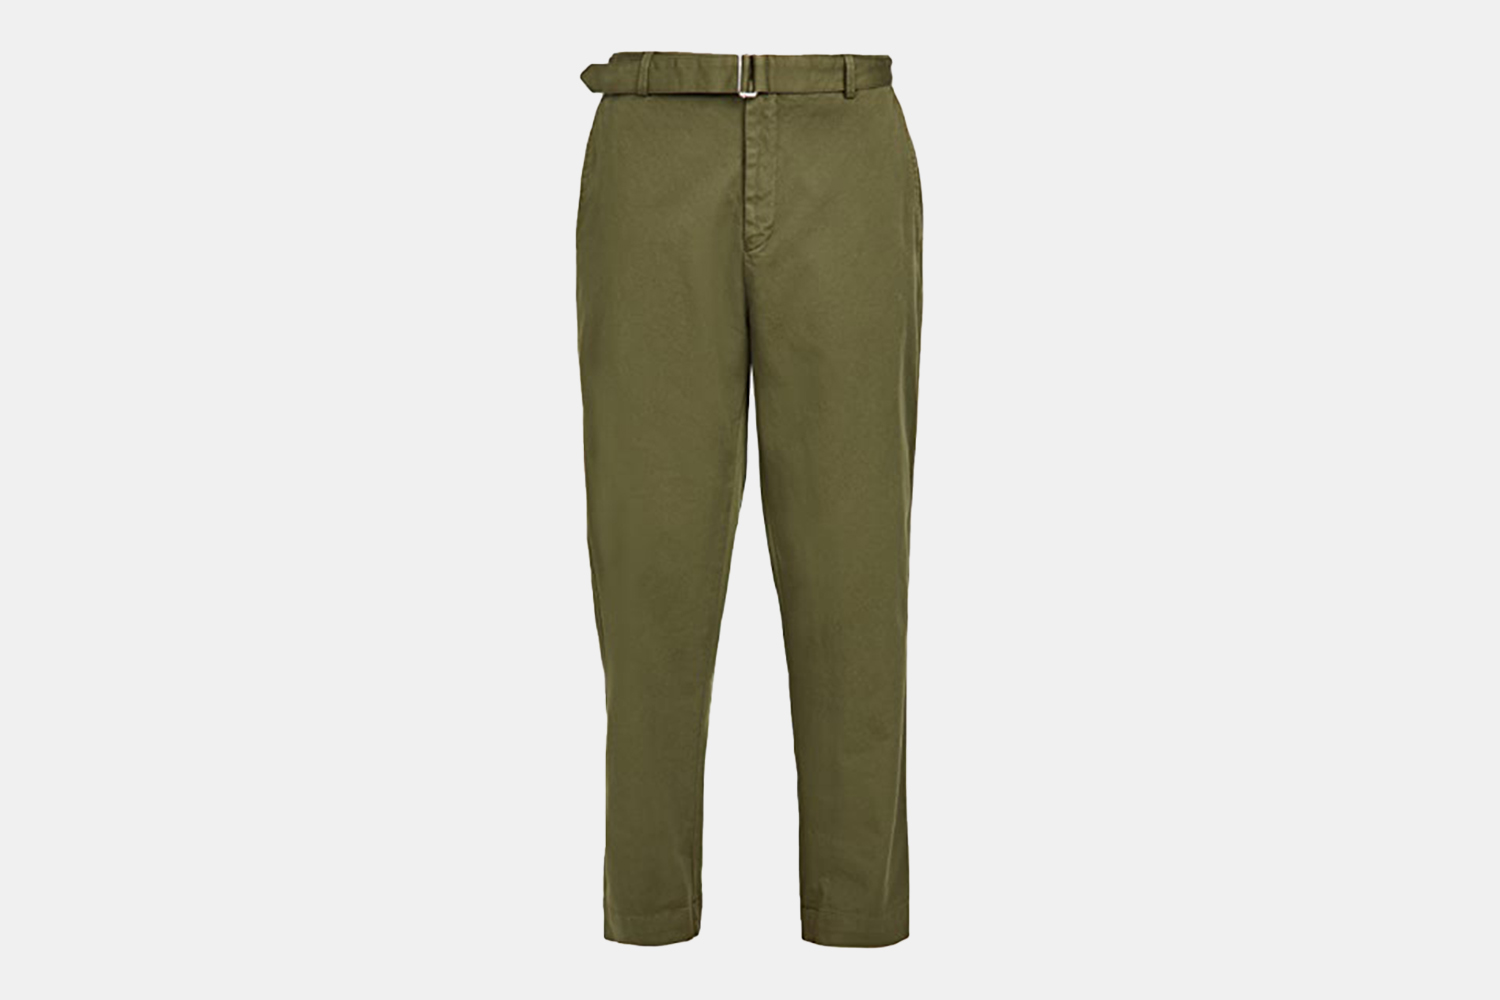 a pair of built-in belted, olive colored pants.